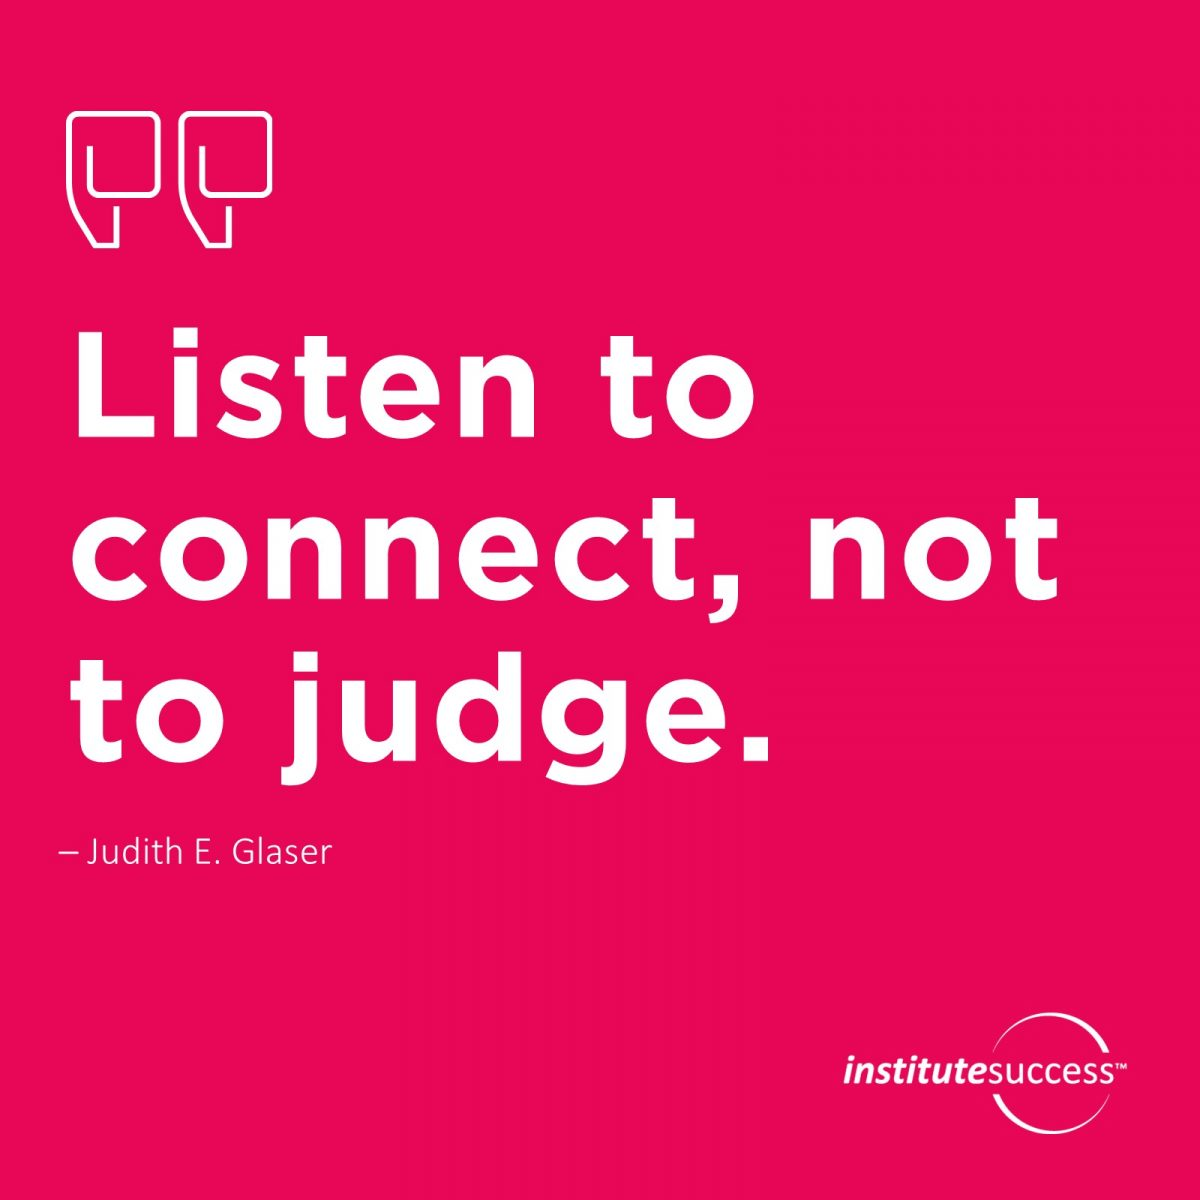 Listen to connect, not to judge.	Judith E. Glaser